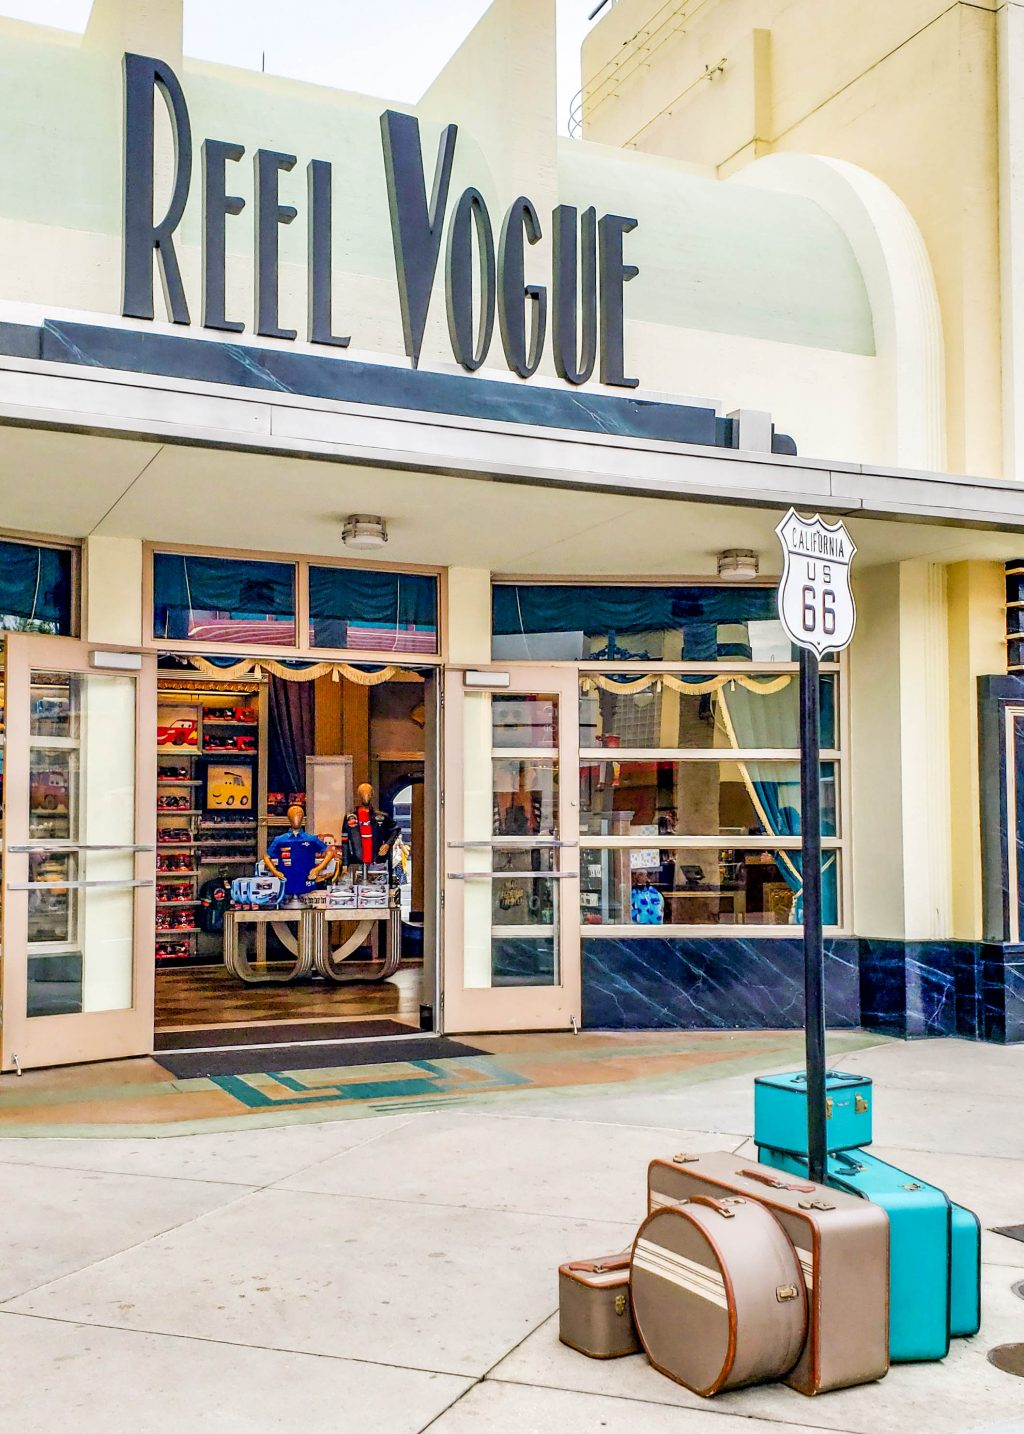 """A store with a sign that says """"Reel Vogue"""". In front of it is a sign for Route 66 and several suitcases."""